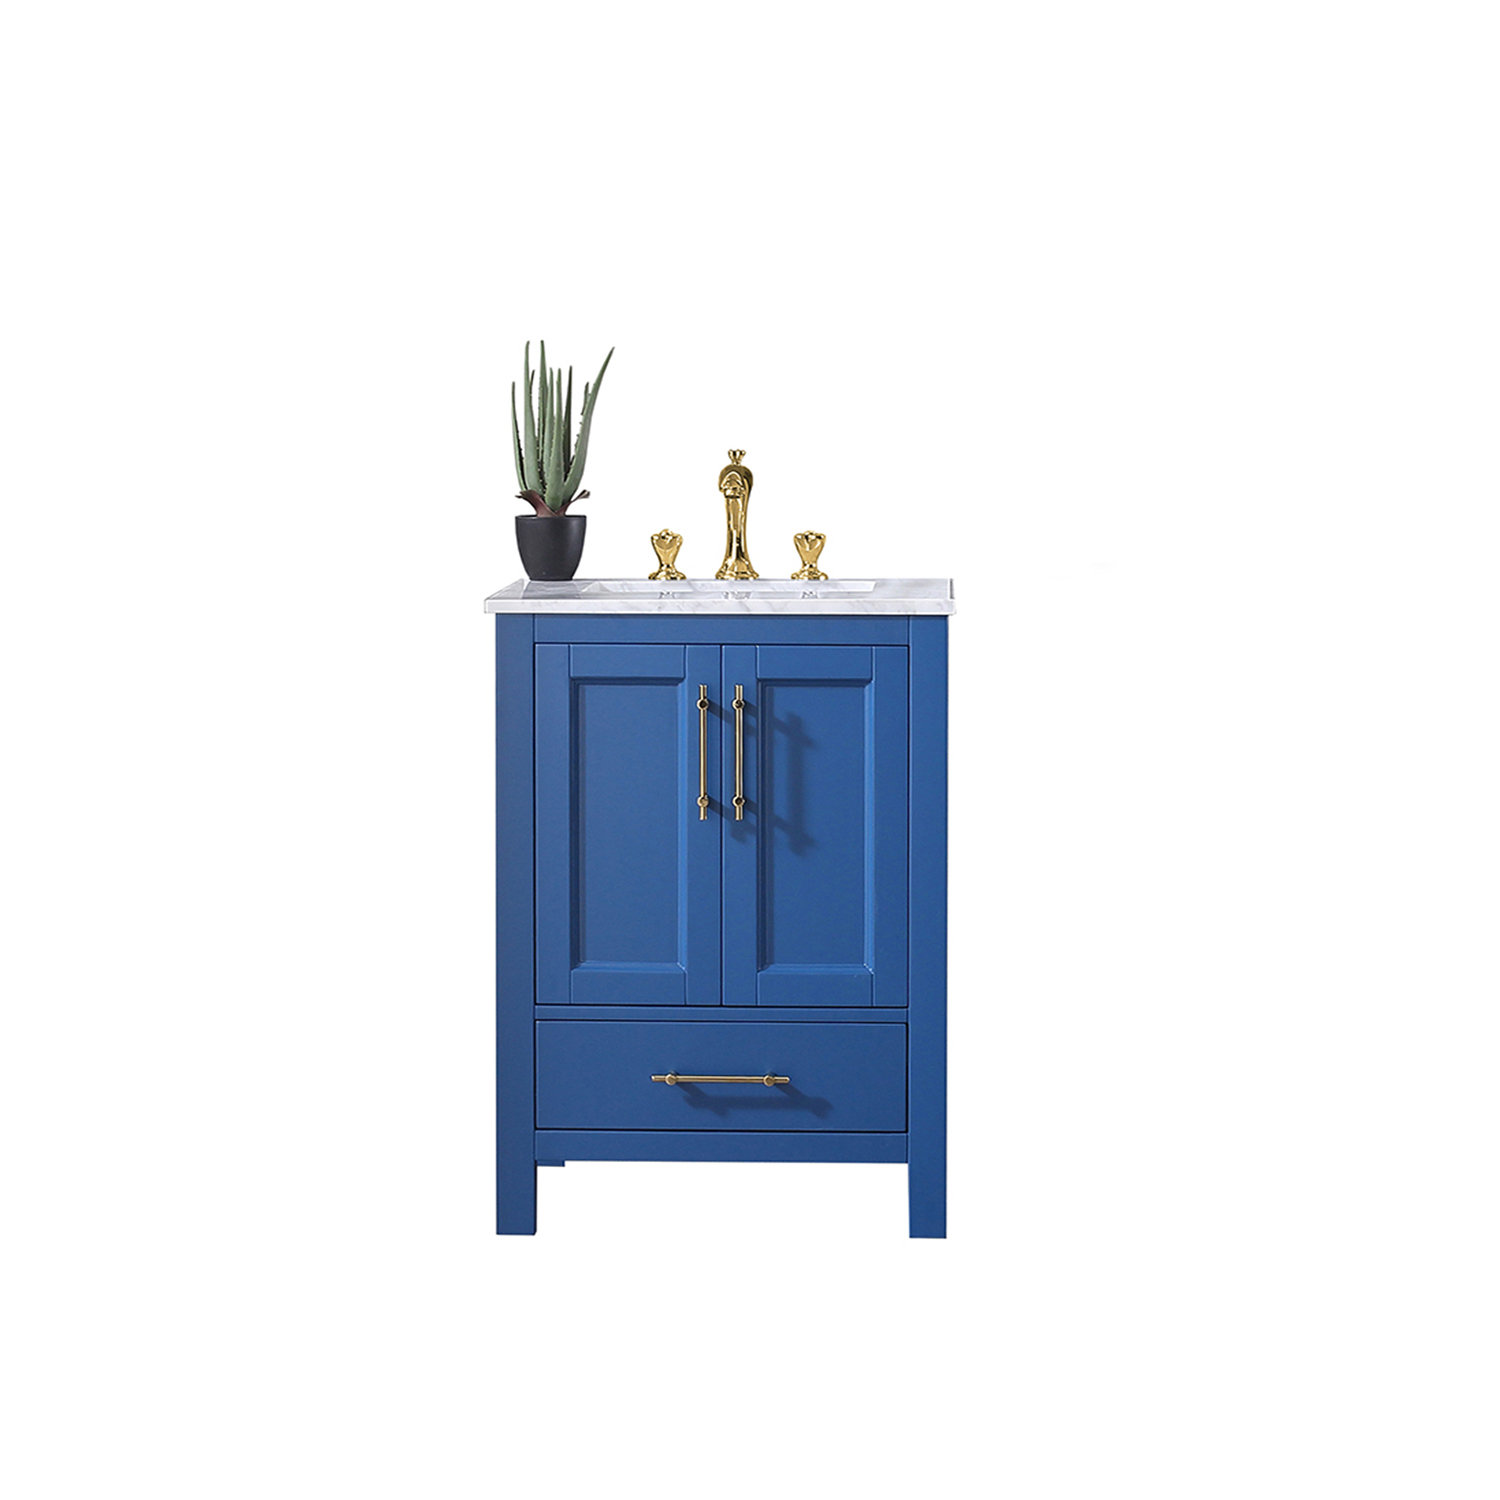 EVVN413 30BLU A Main - Eviva Navy 30 inch Deep Blue Bathroom Vanity with White Carrera Counter-top and White Undermount Porcelain Sink